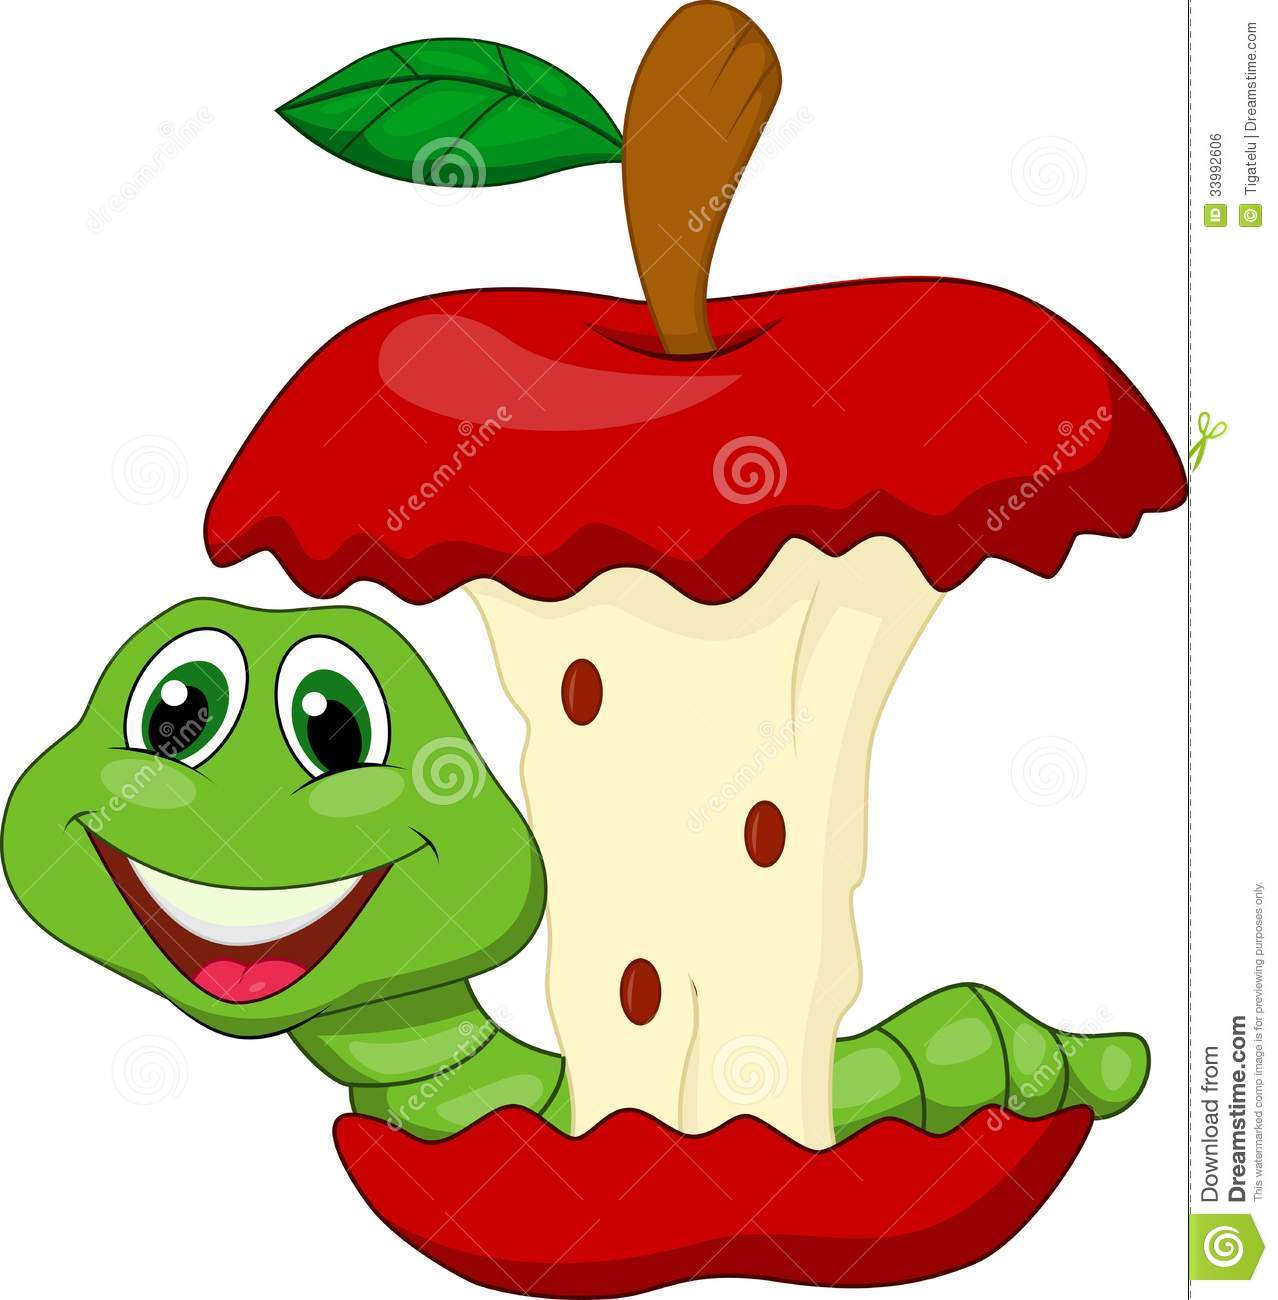 Worm Eating Red Apple Cartoon Royalty Free Stock Image - Image ...